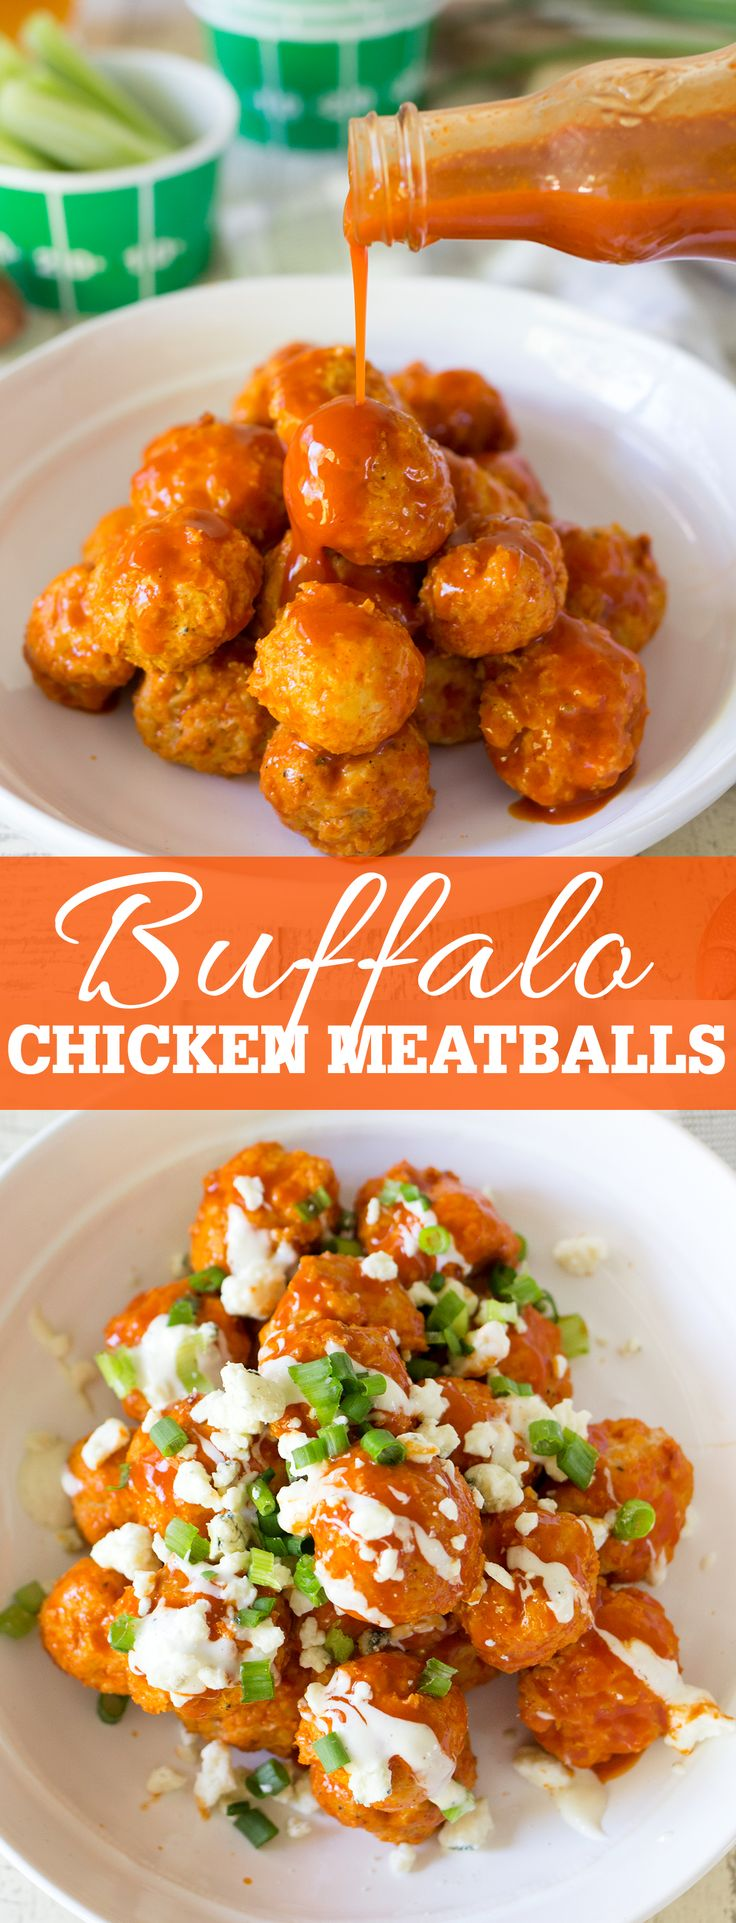 Buffalo Chicken Meatballs with a blue cheese drizzle are the perfect zesty and delicious game day party appetizer! Get the recipe + learn more about being a #DesignatedRider this football season with Uber. #ad